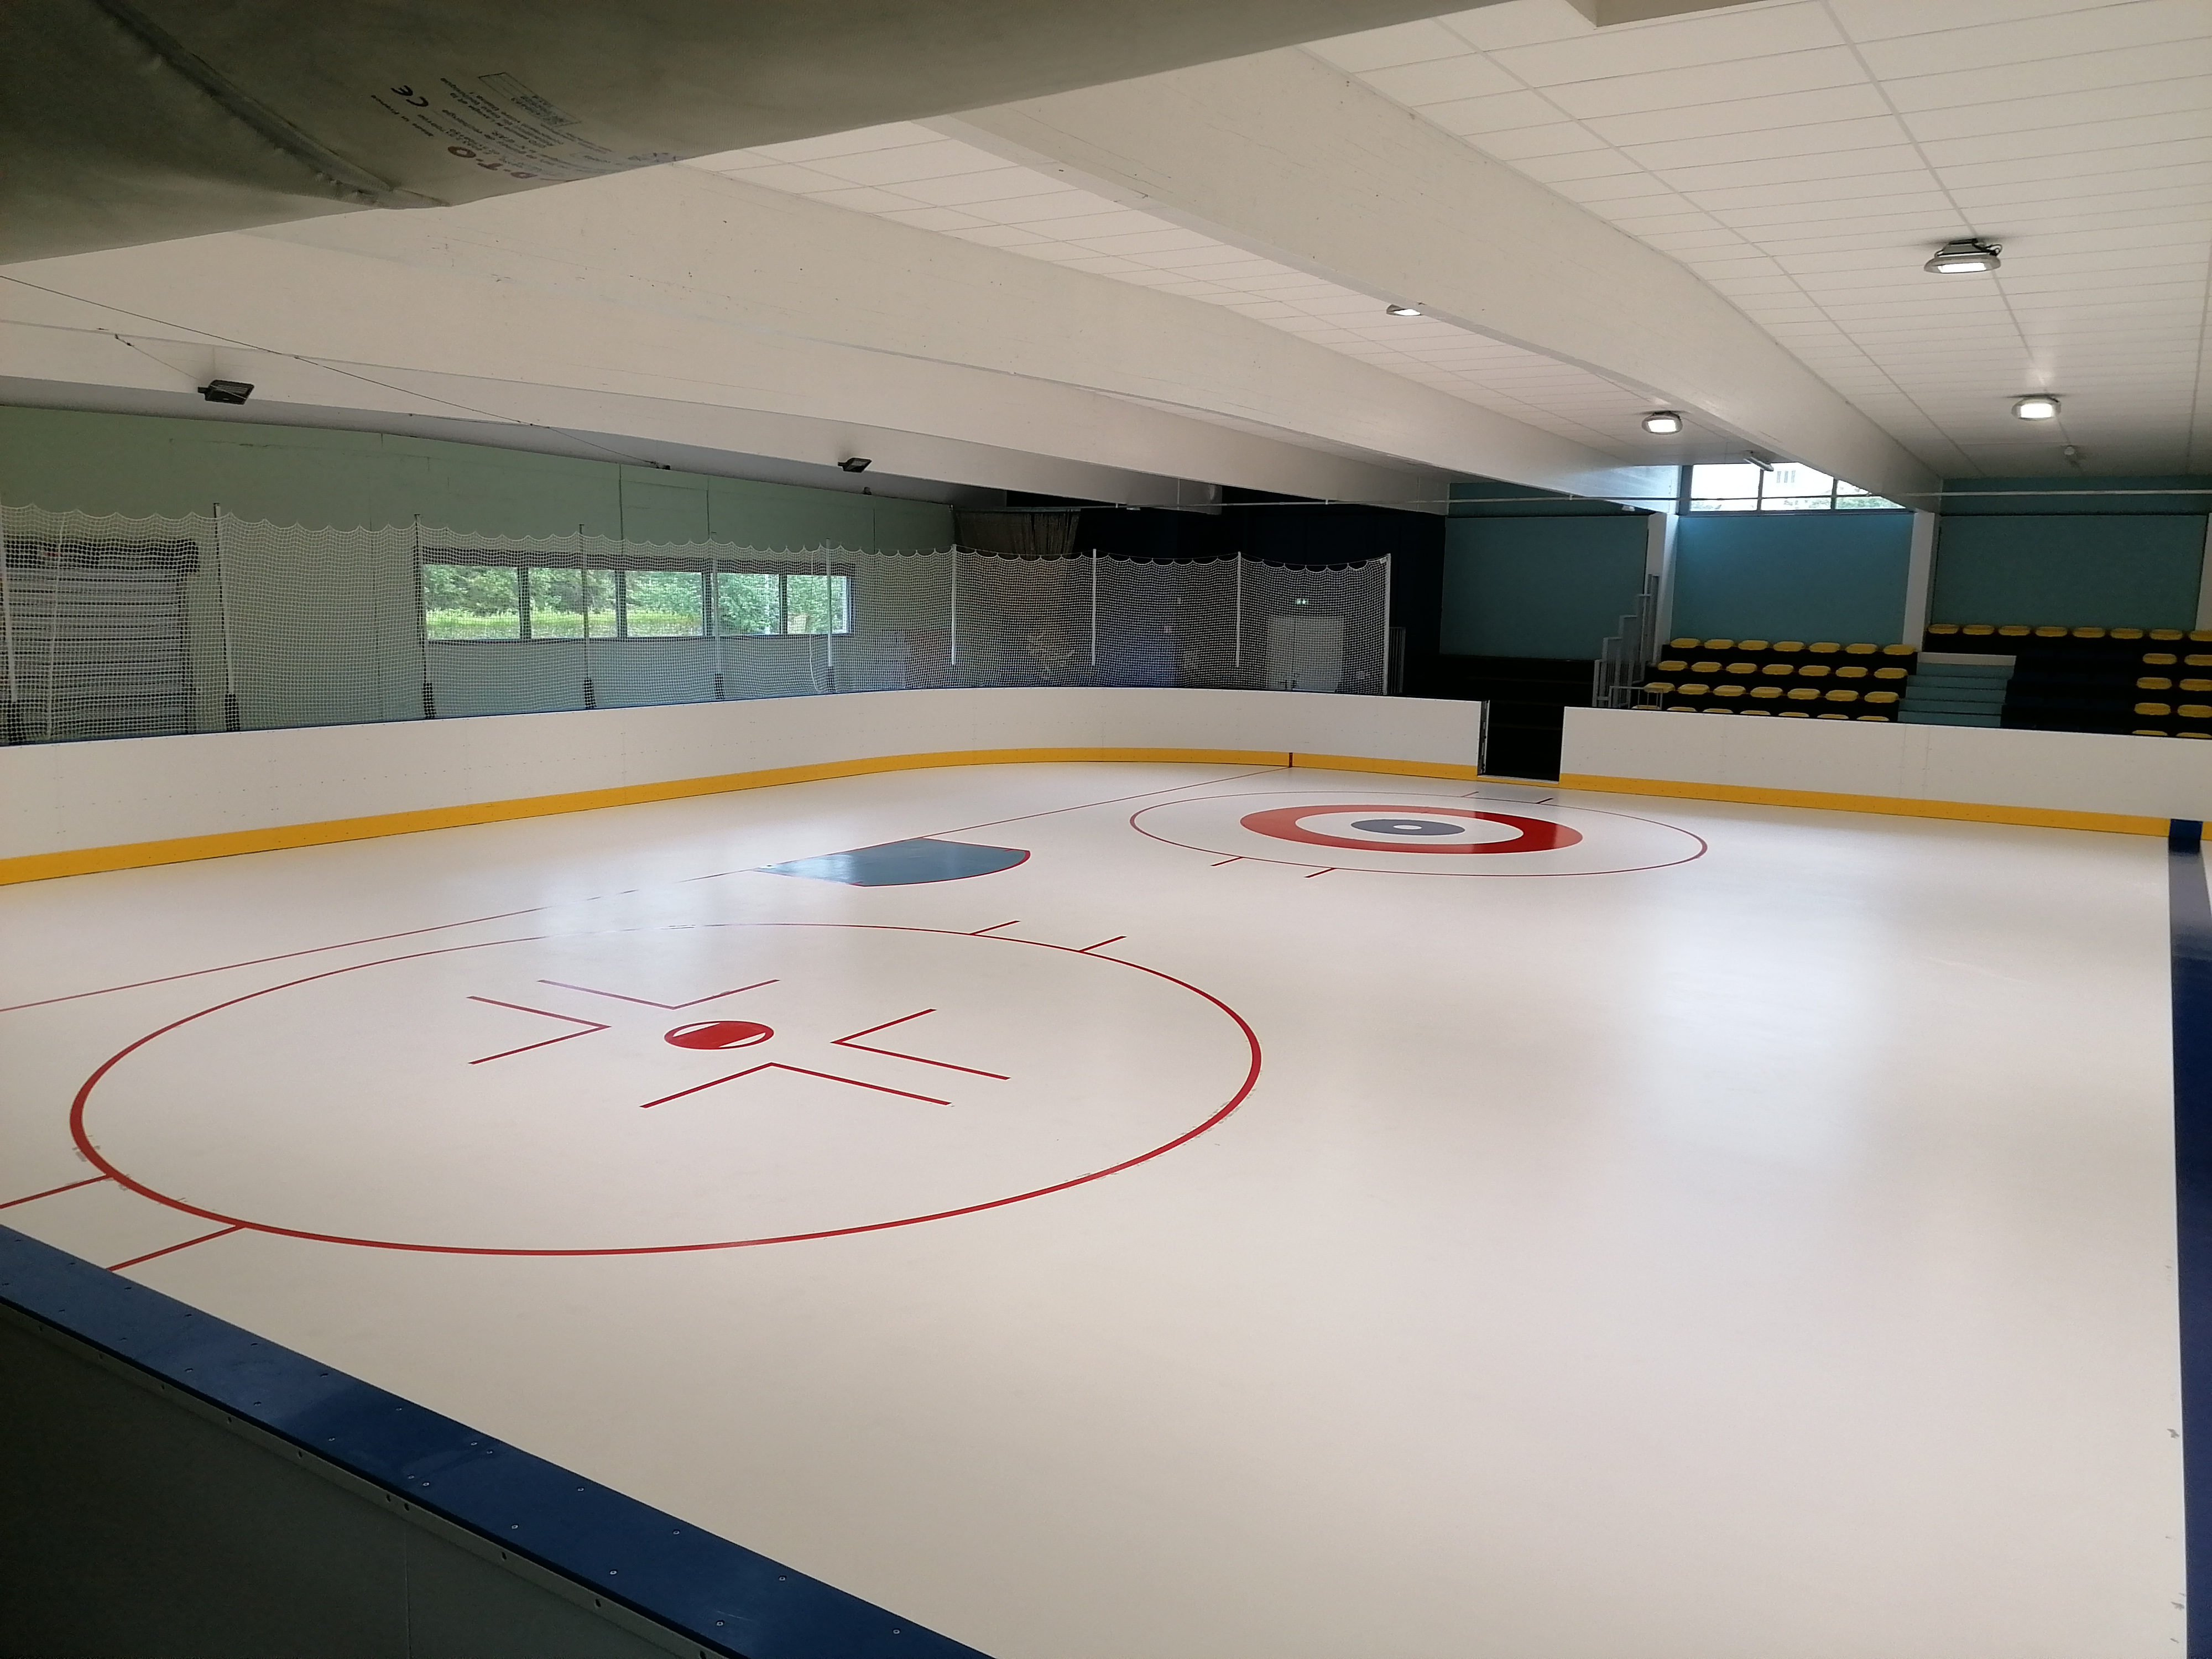 Tracé Hockey curling - Patinoire - Sarl Trace Plus